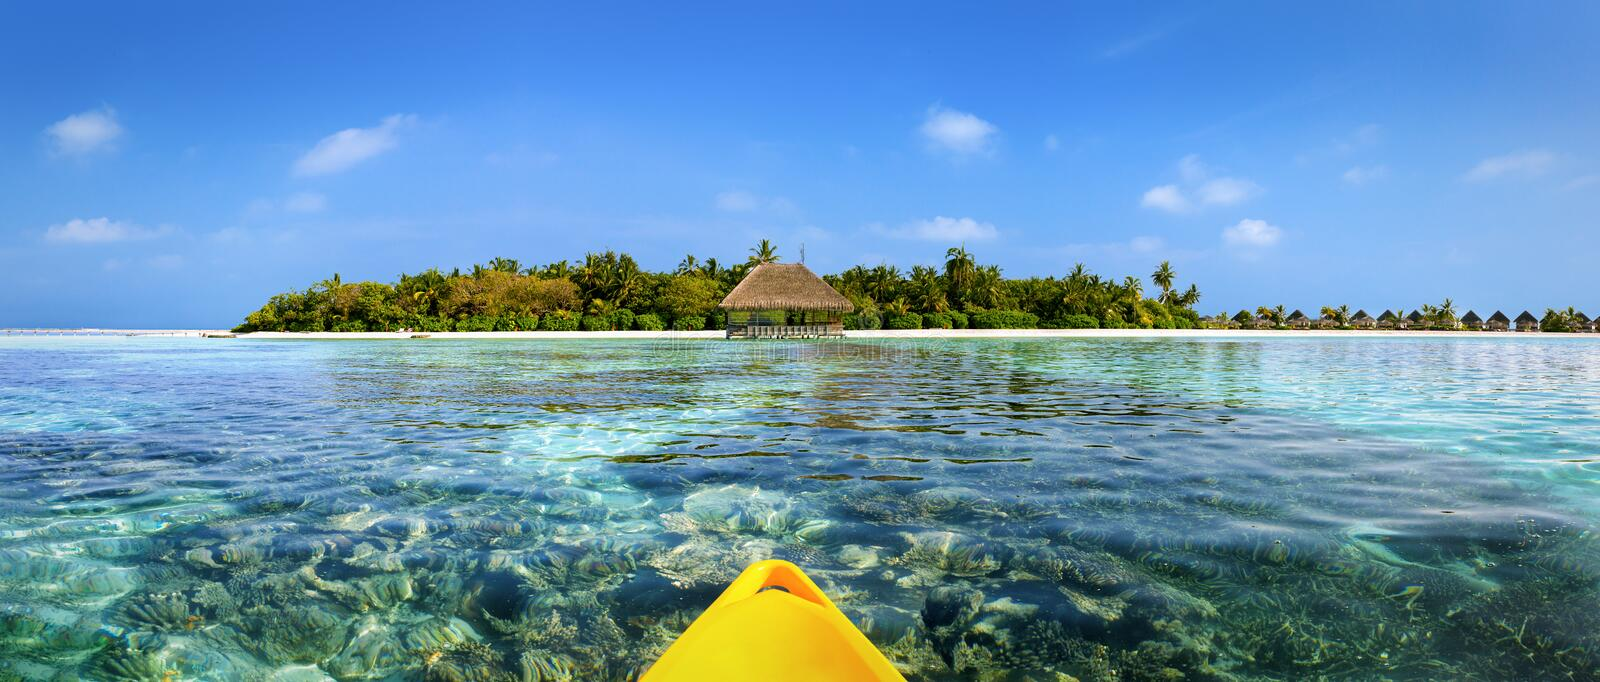 View from a canoe over coral gardens to an Maldivian island royalty free stock images